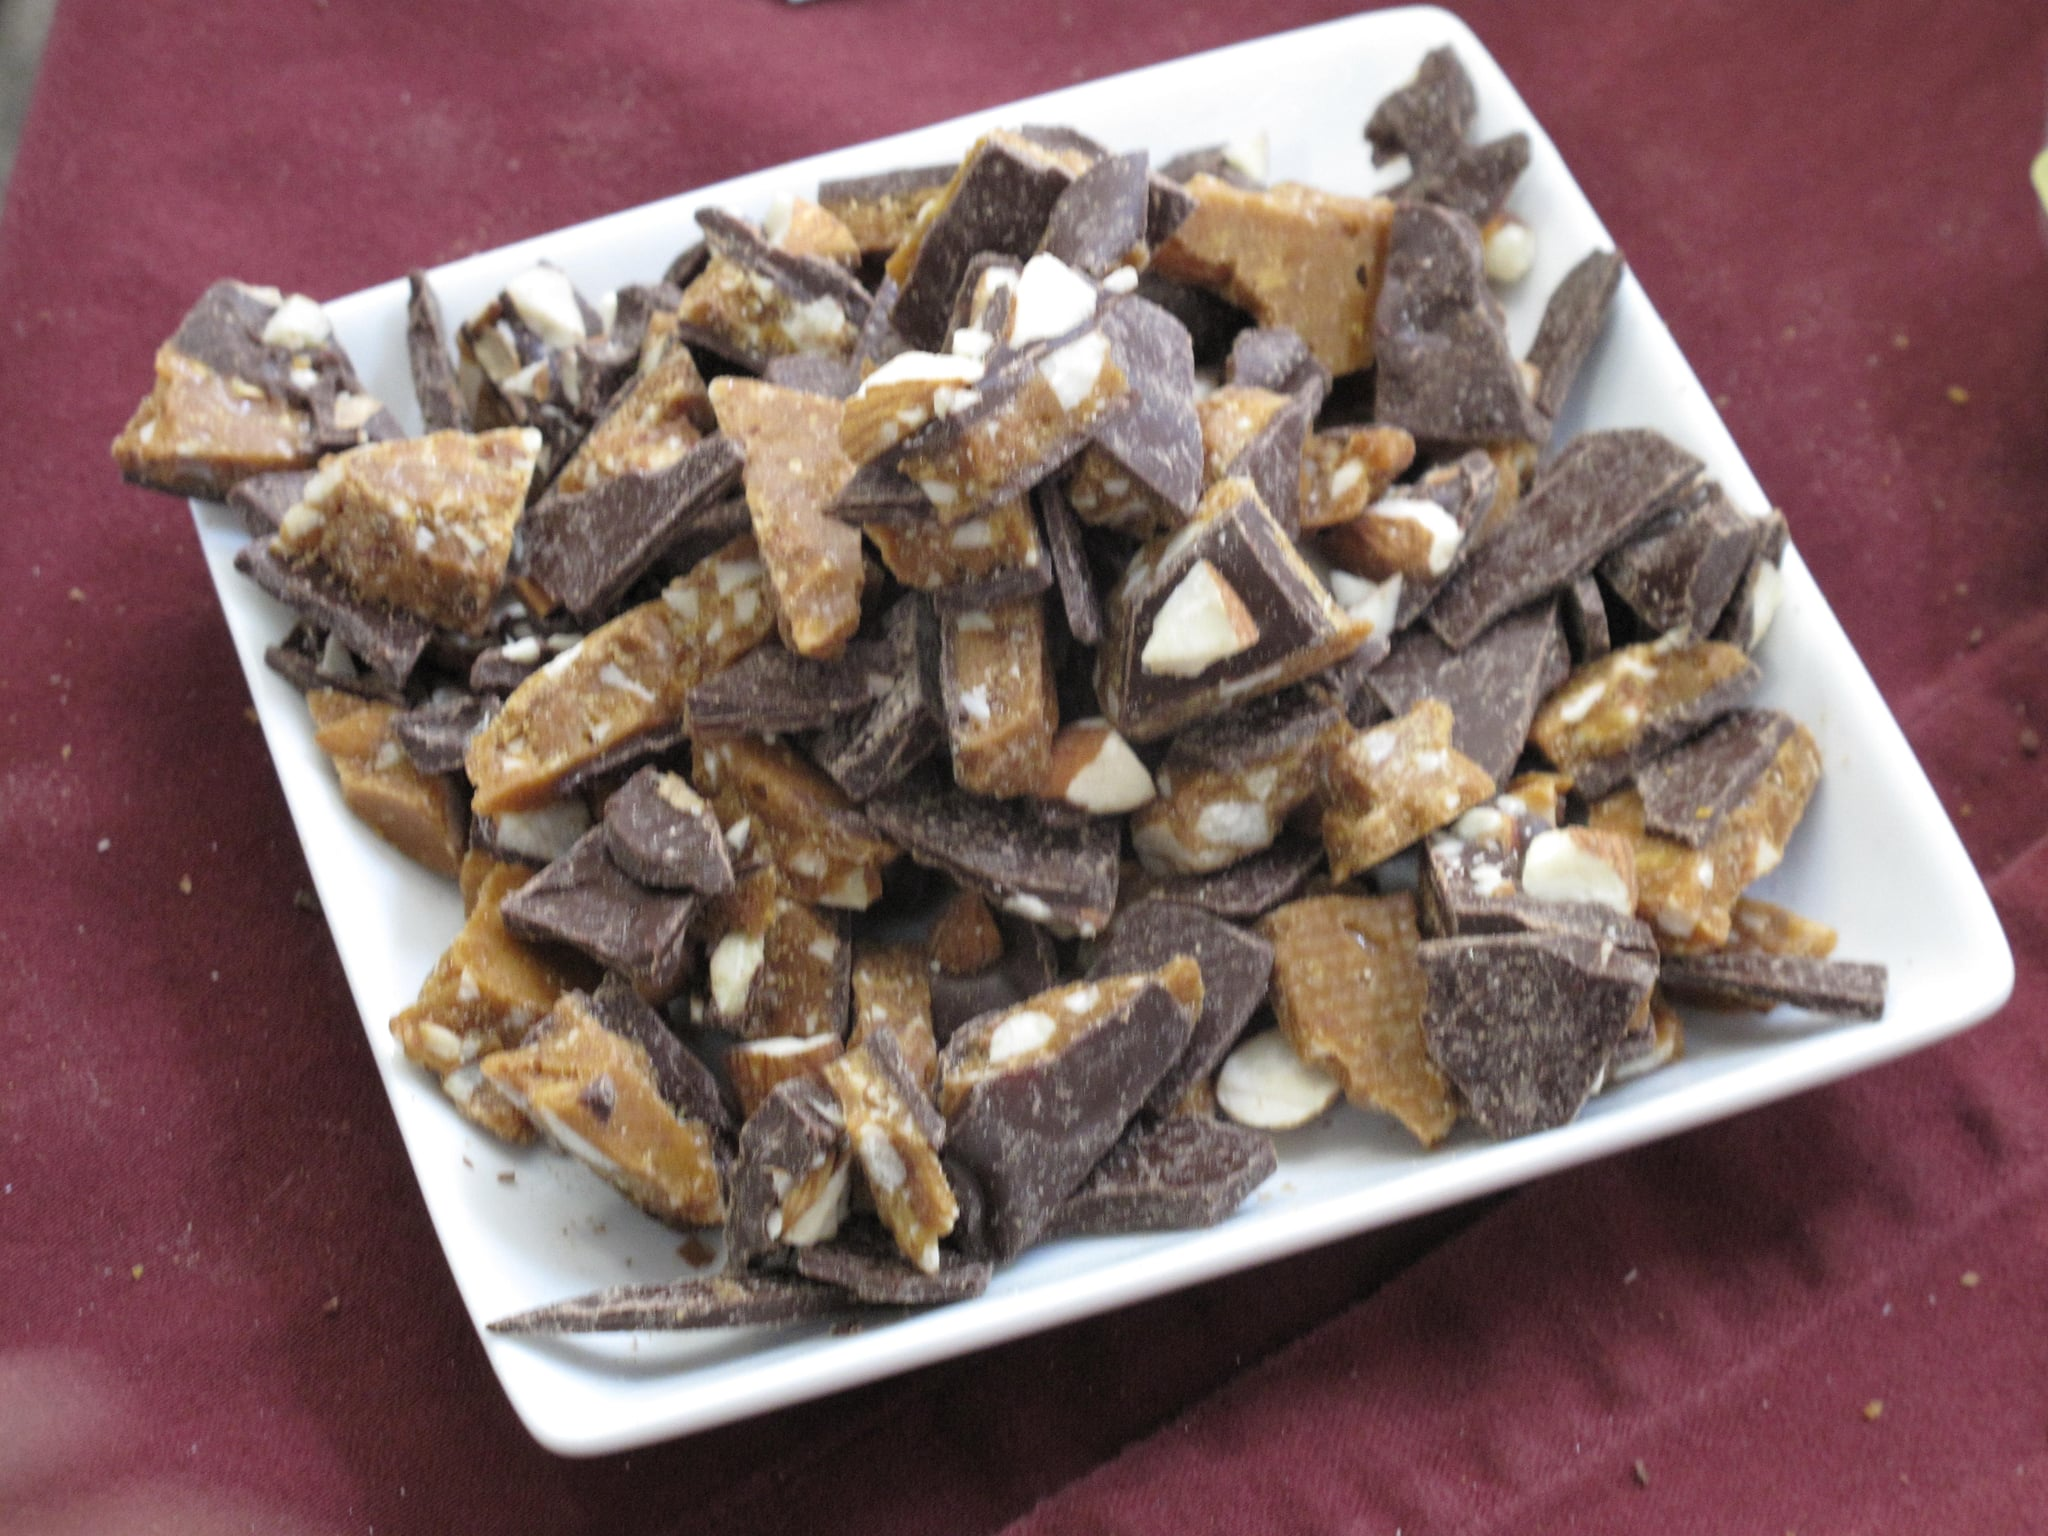 Dolce Bella Chocolates made an almond toffee from fresh roasted central valley almonds, Guittard 61 percent dark chocolate, and lots of butter.<br />